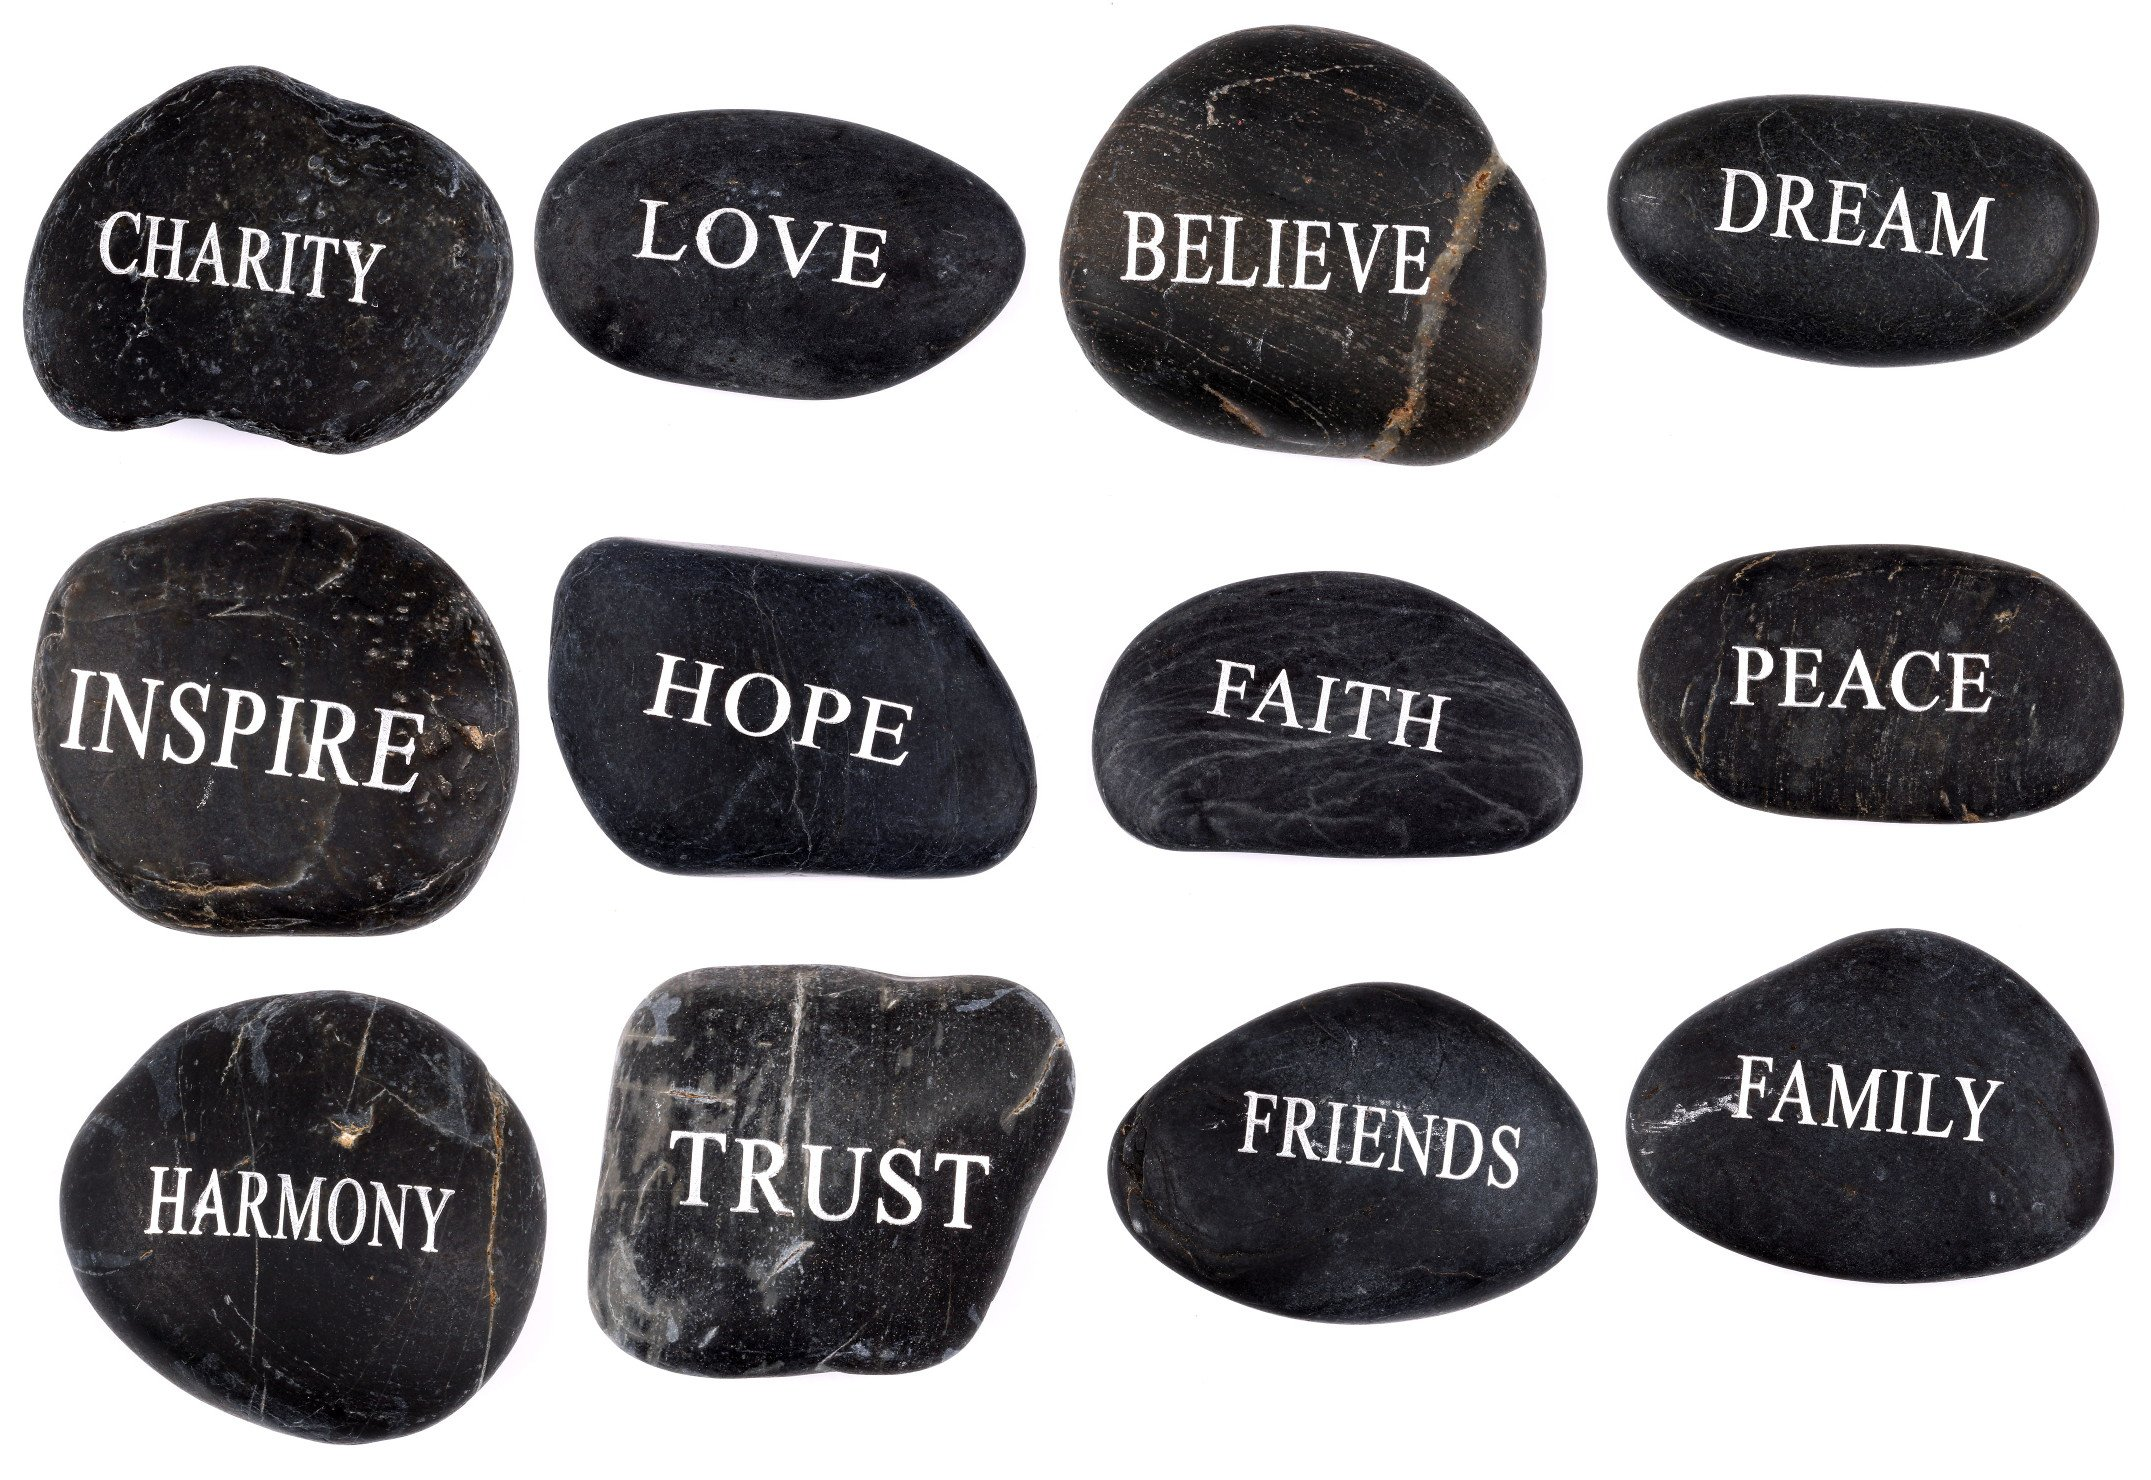 Engraved Inspirational Black Stones (12 Different Words- Large 2-3 Inches) from the Holy Land